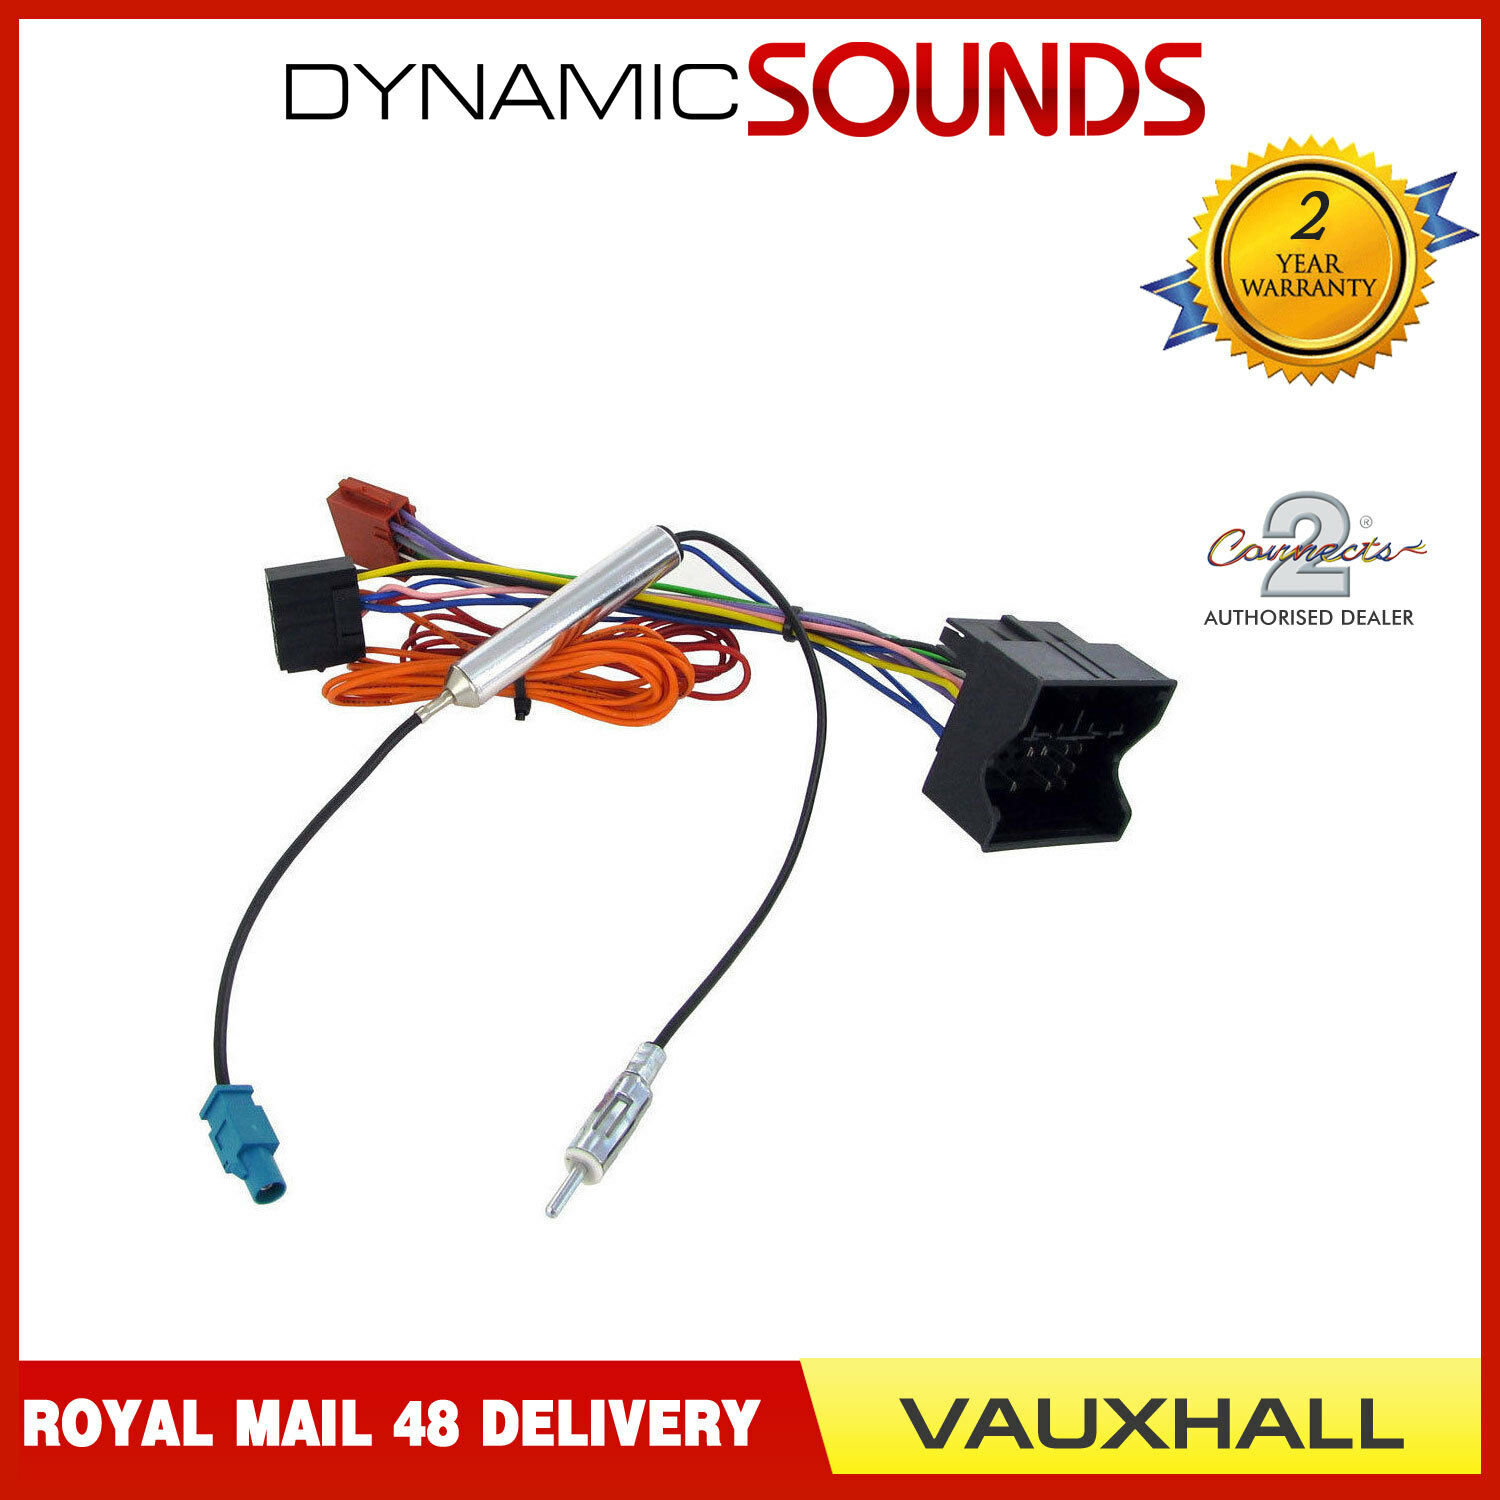 Vauxhall Combo Wiring Loom Manual Guide Diagram Usb Speaker Stereo Cd Radio Iso Harness Aerial Adaptor For Rh Picclick Com Alternator Pdf